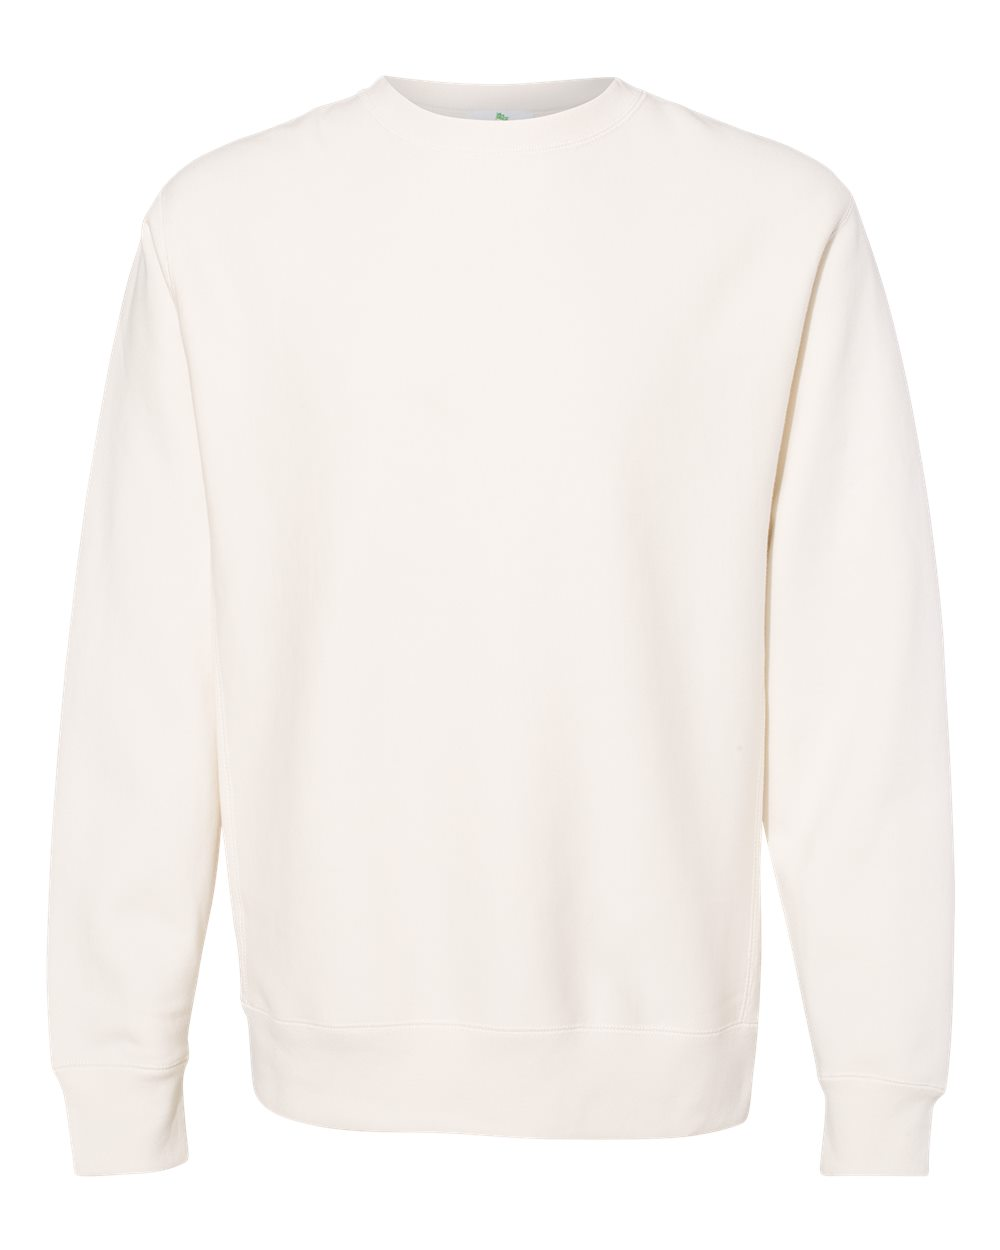 Independent-Trading-Co-Mens-Premium-Heavyweight-Cross-Grain-Sweatshirt-IND5000C thumbnail 12